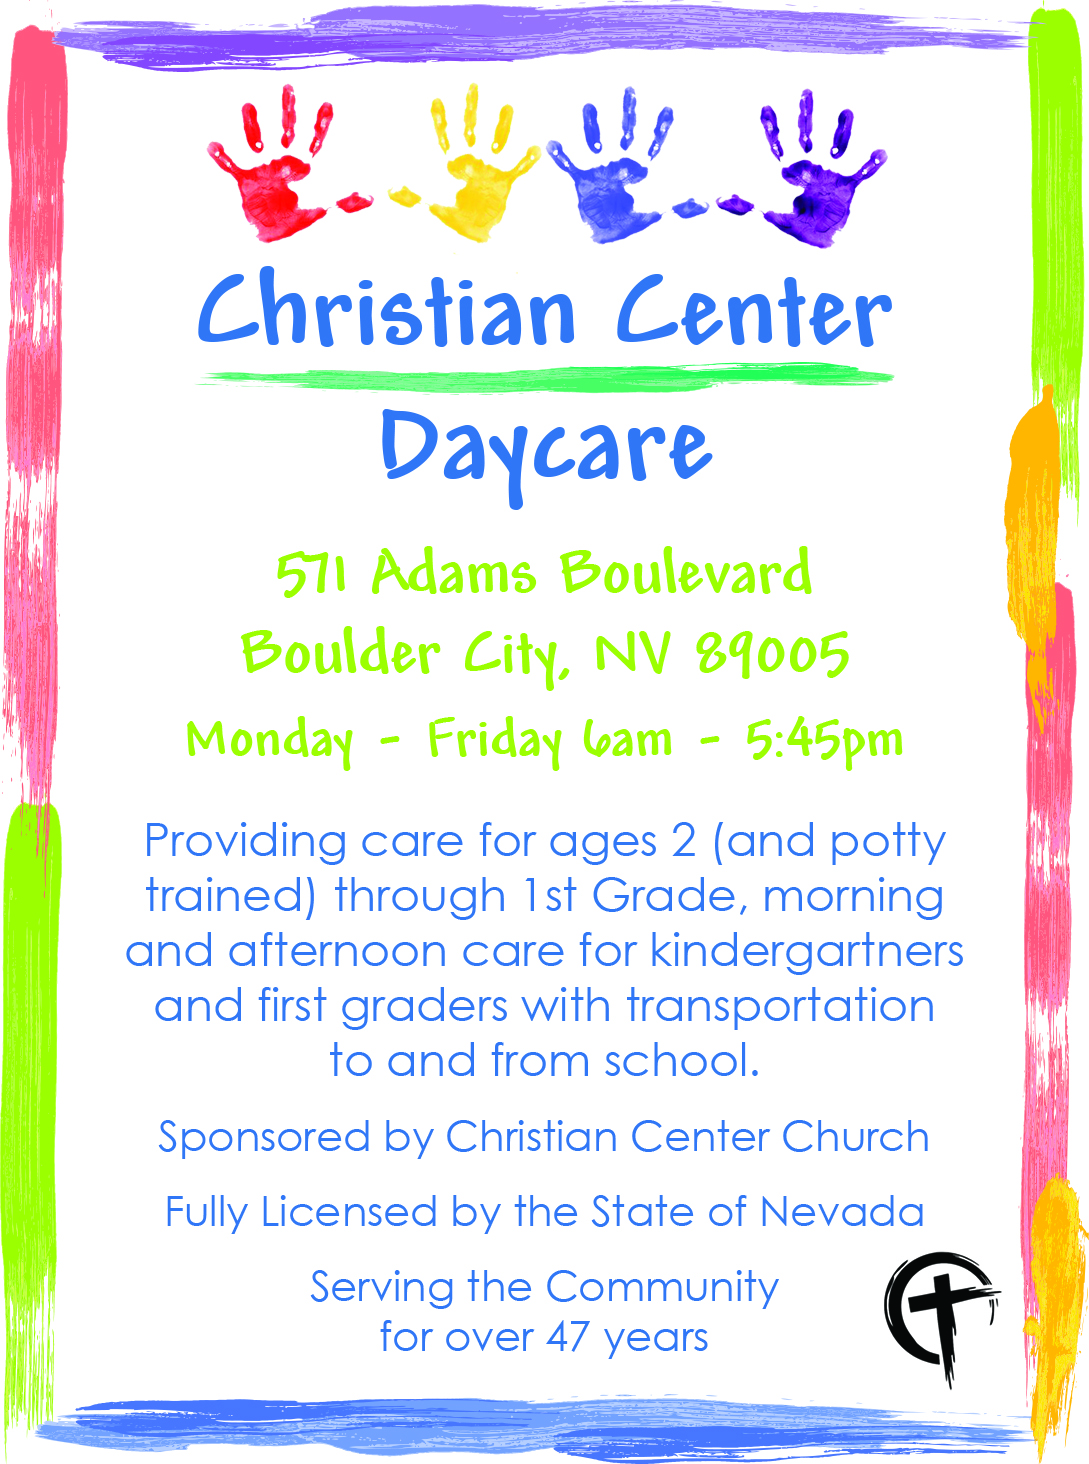 Christiancenter daycare march16